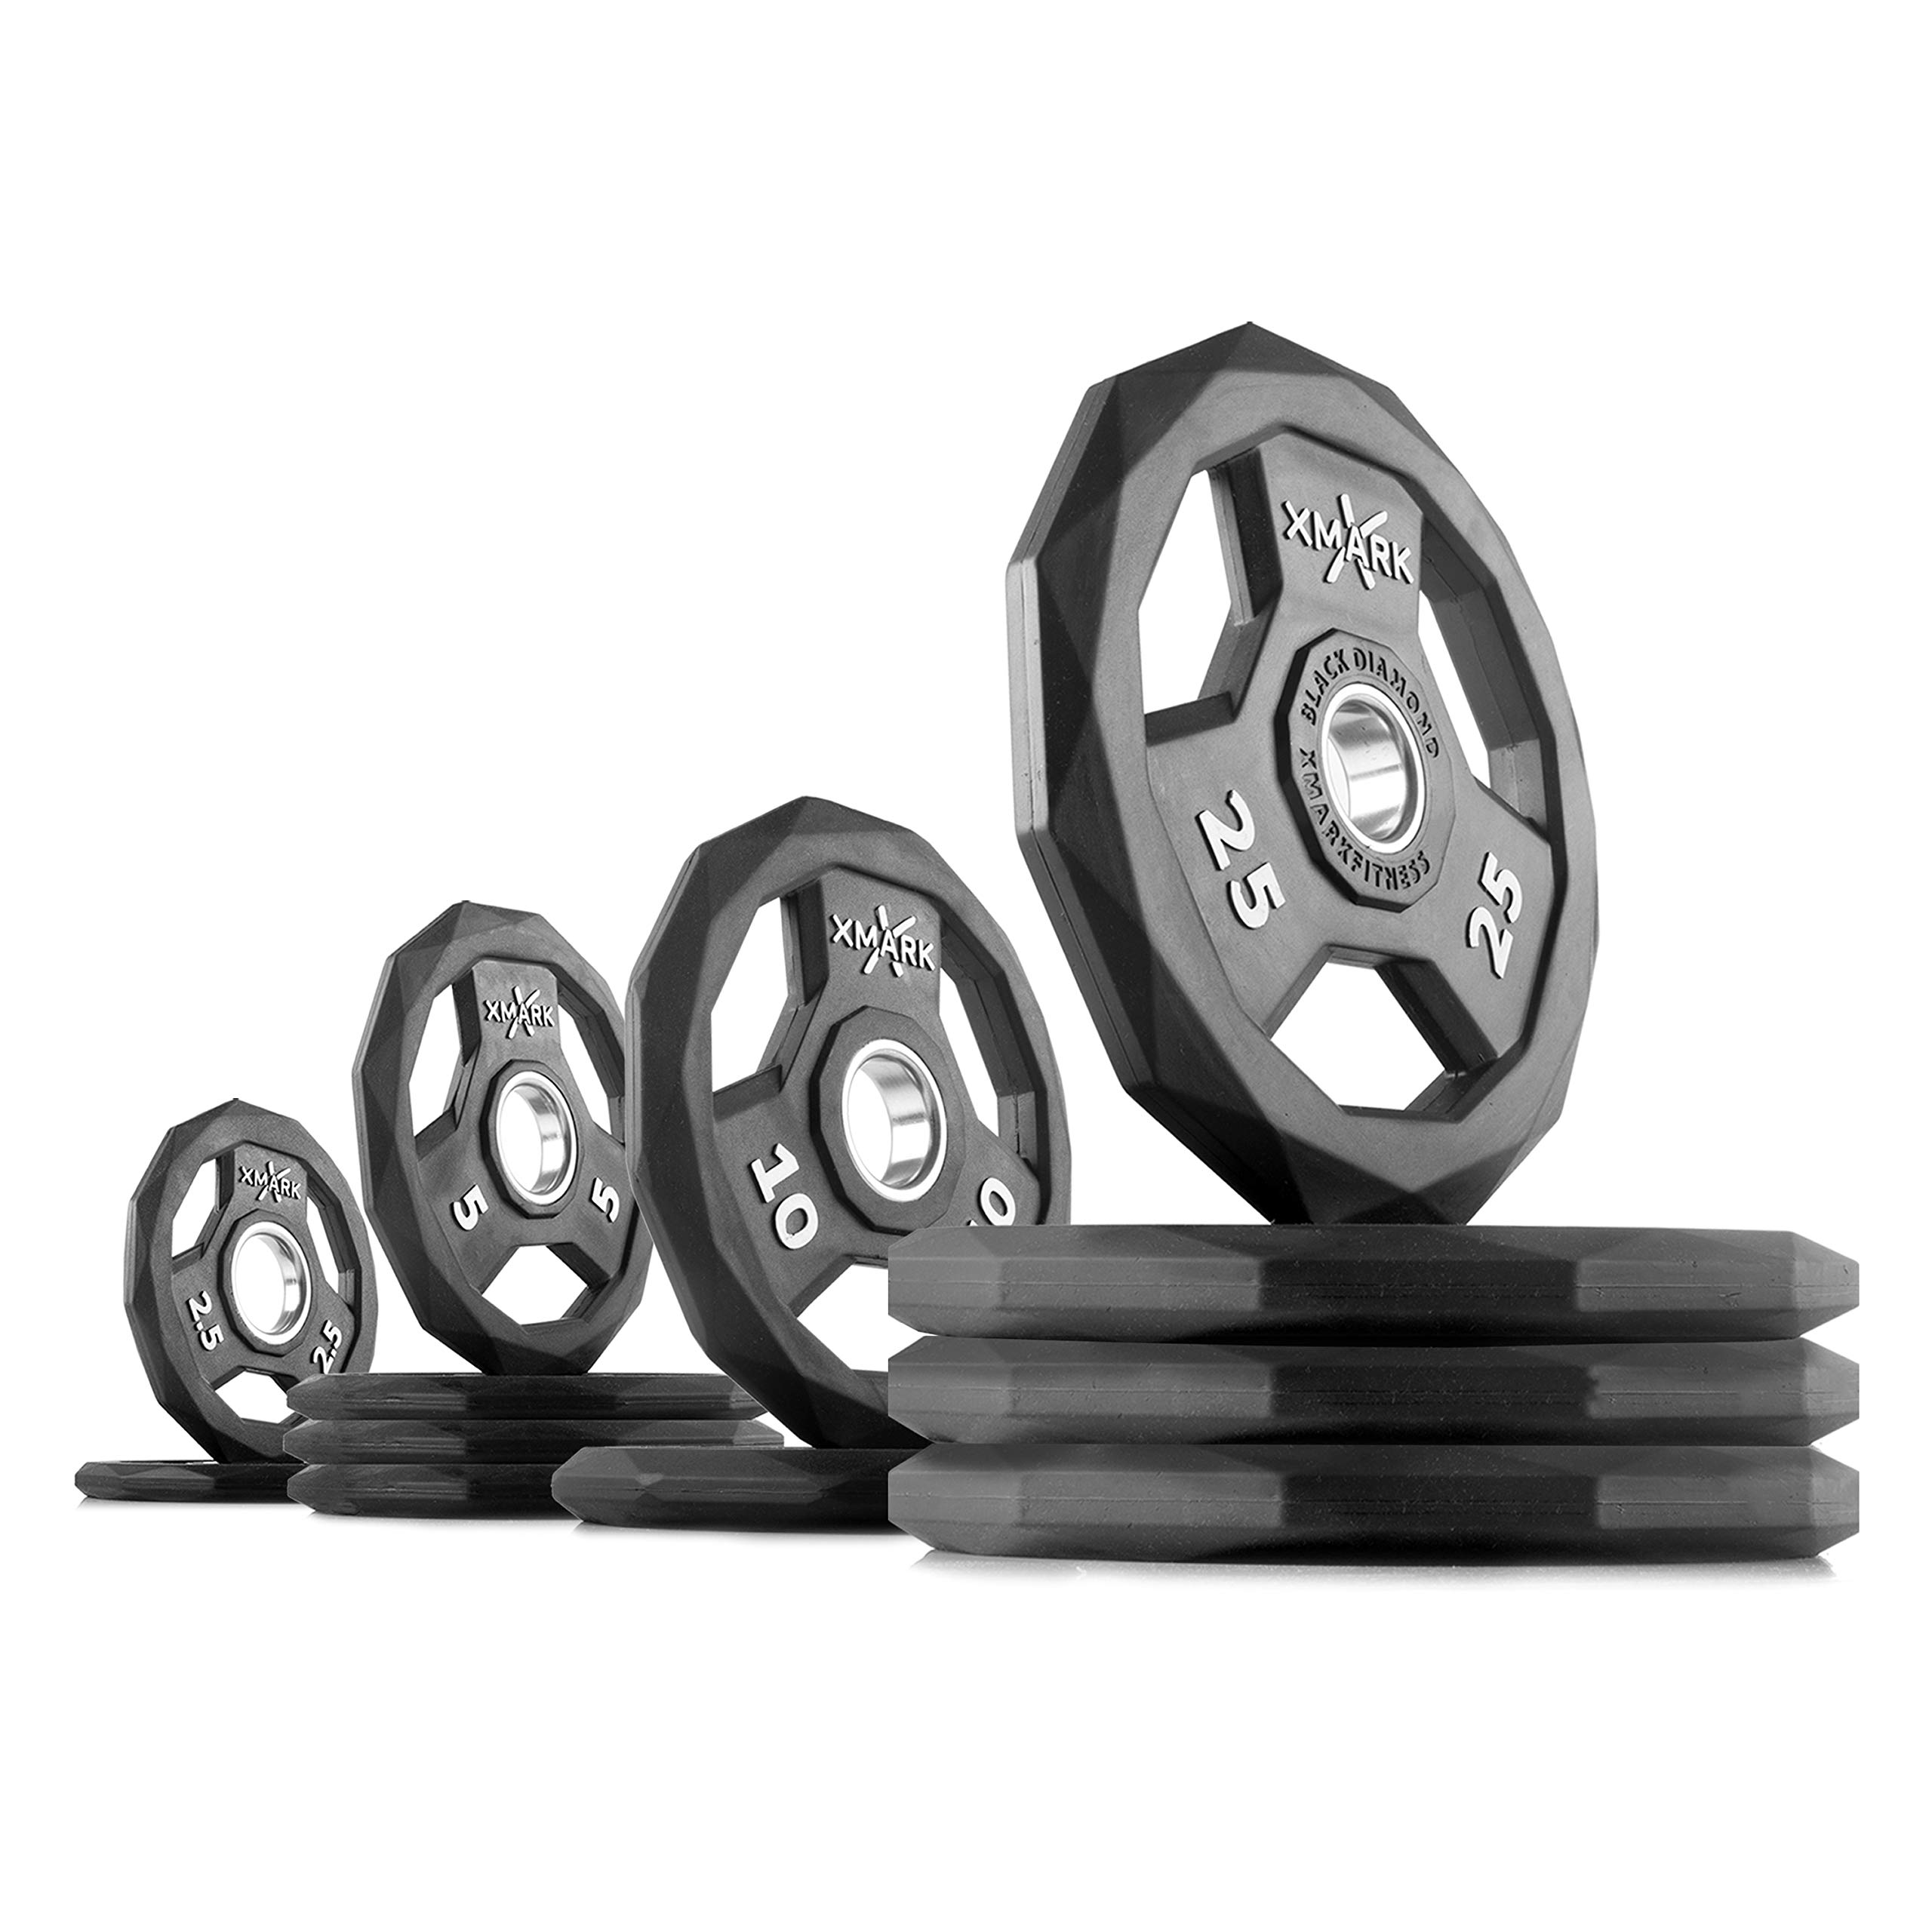 XMark Black Diamond 145 lb Set Olympic Weight Plates, One-Year Warranty, Patented Design